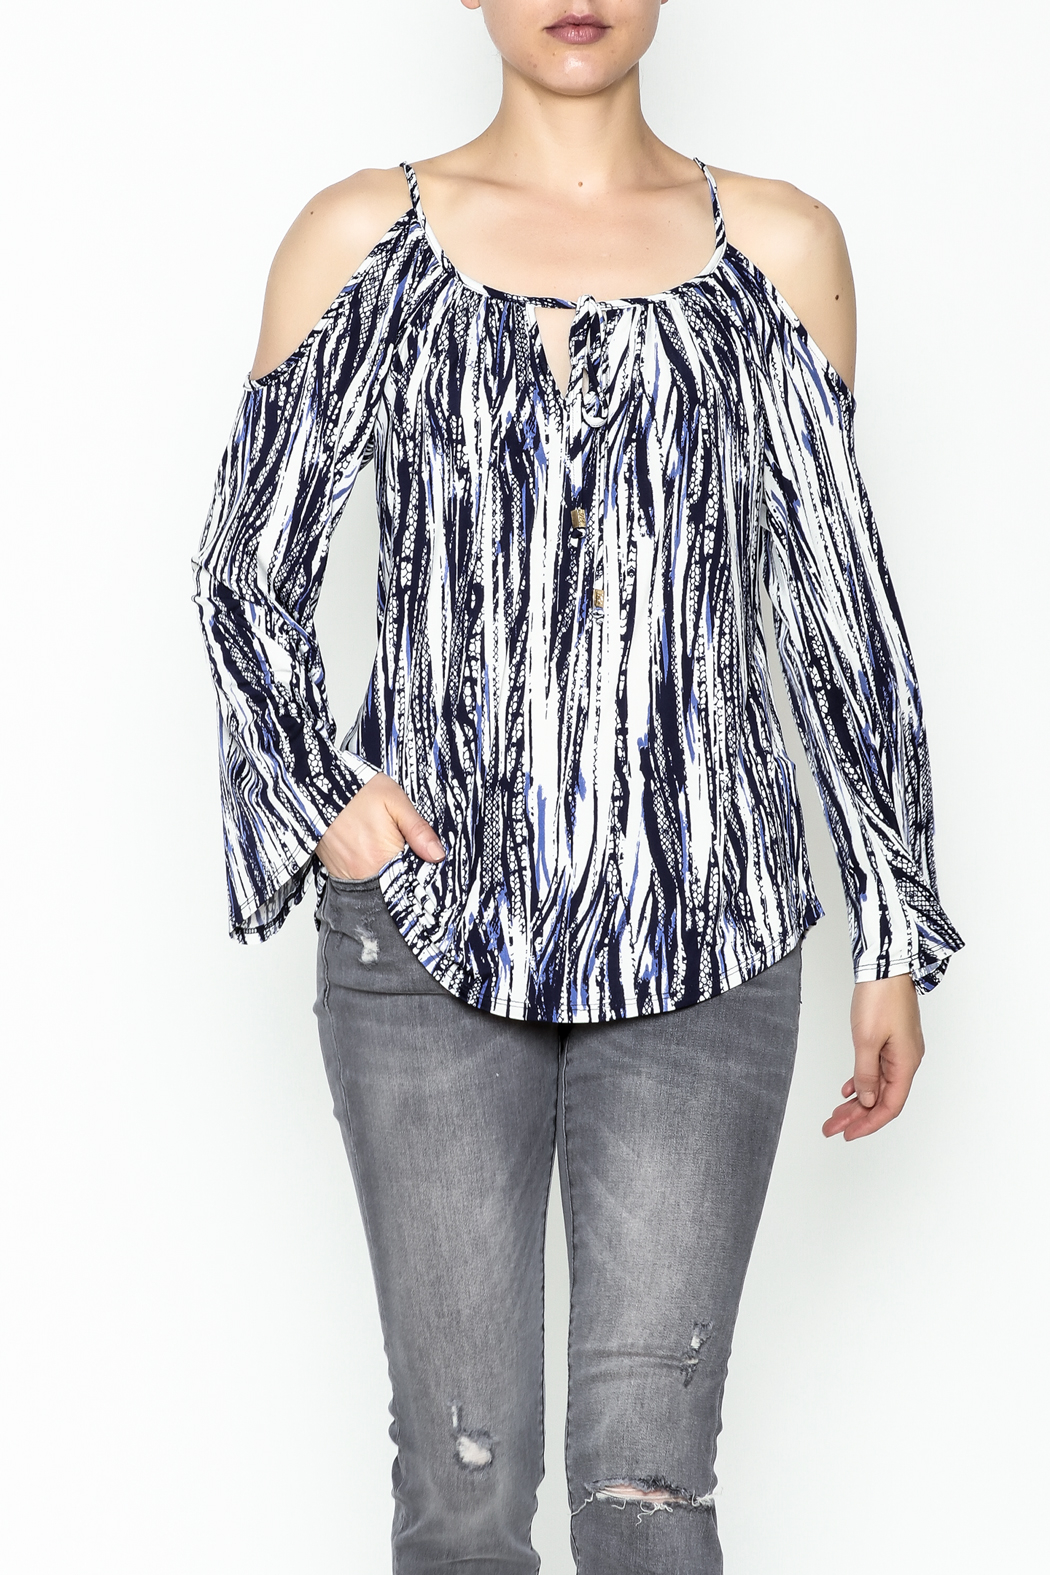 Veronica M Amy Cold Shoulder Top - Main Image